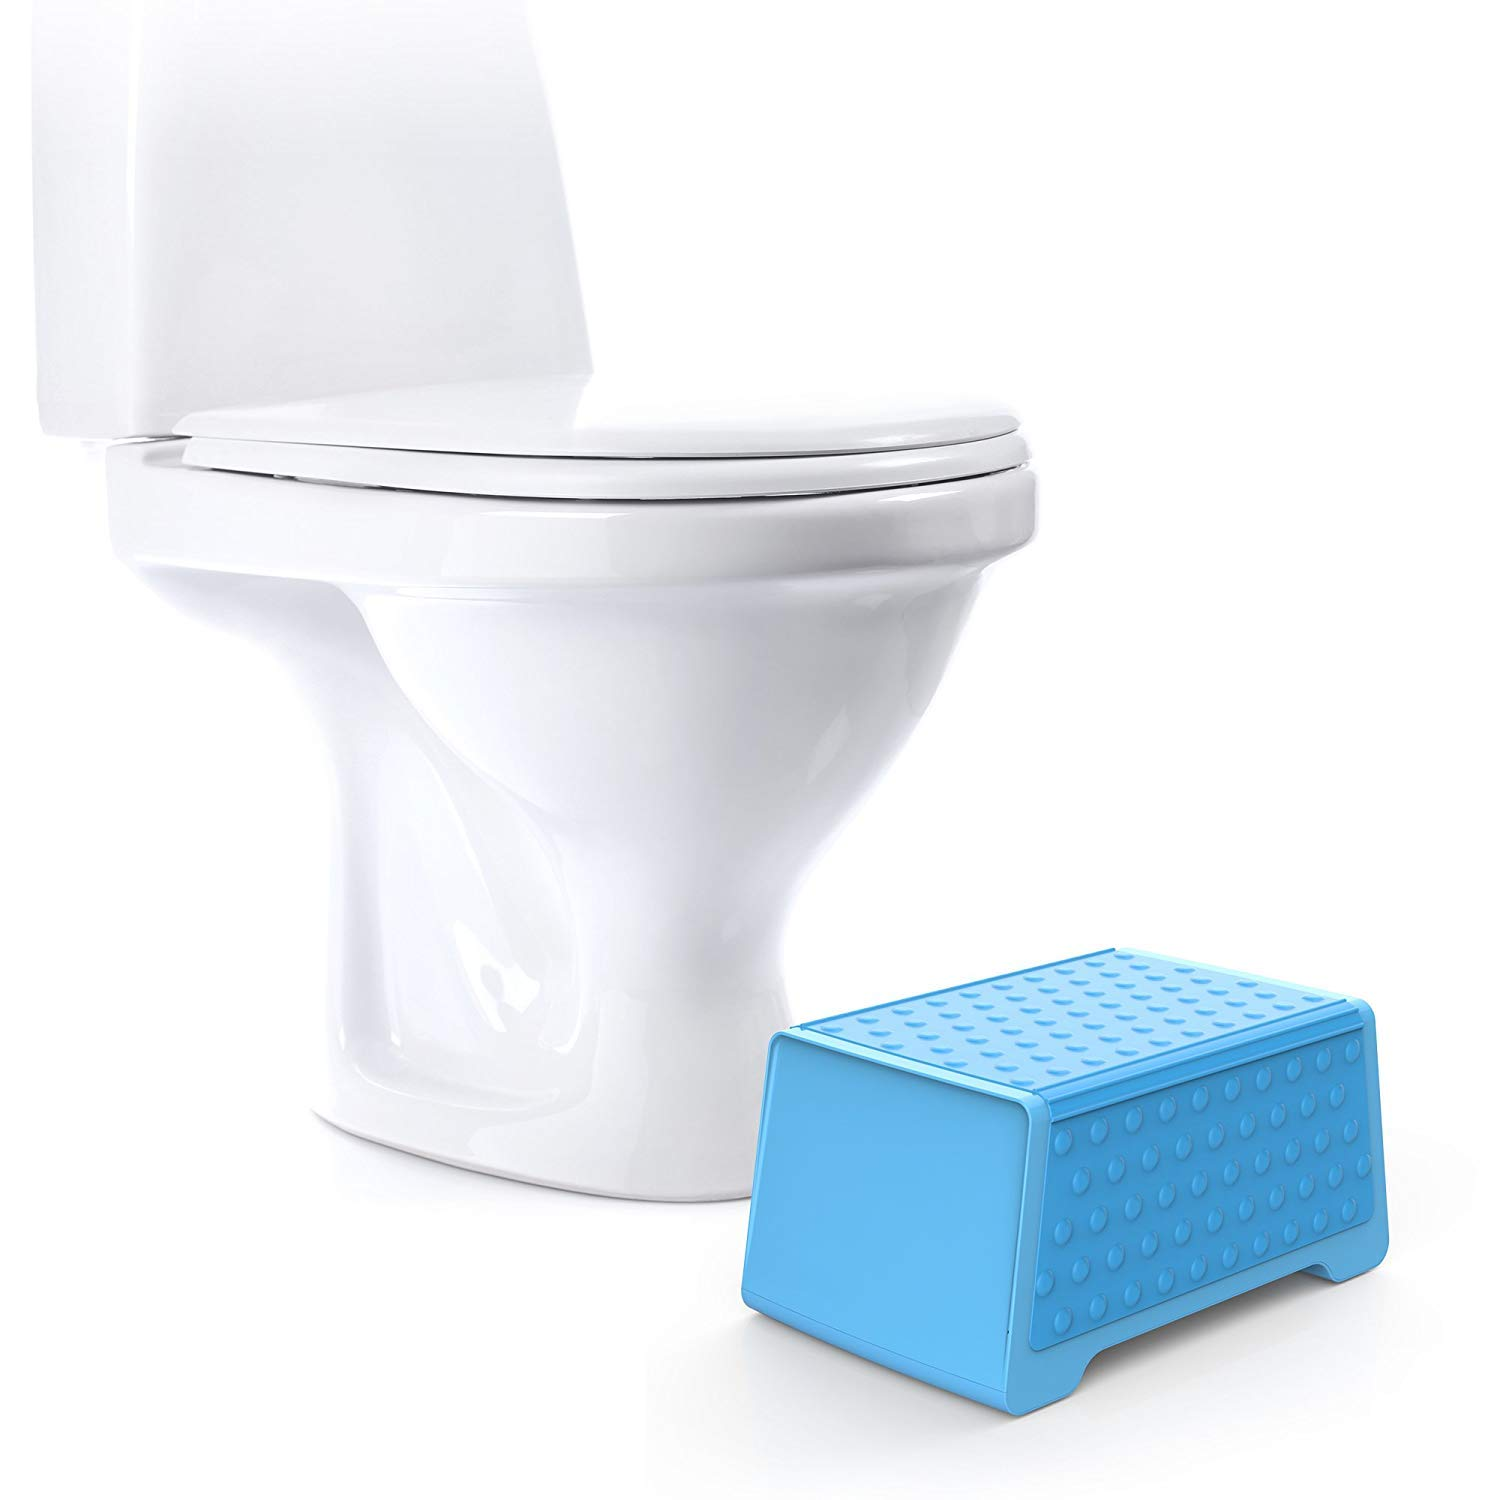 Doctor Designed Bathroom Toilet Stool and Sink Stool for Children - The EasyStool Children's Dual Height Multifunction Stool by Easy Stool